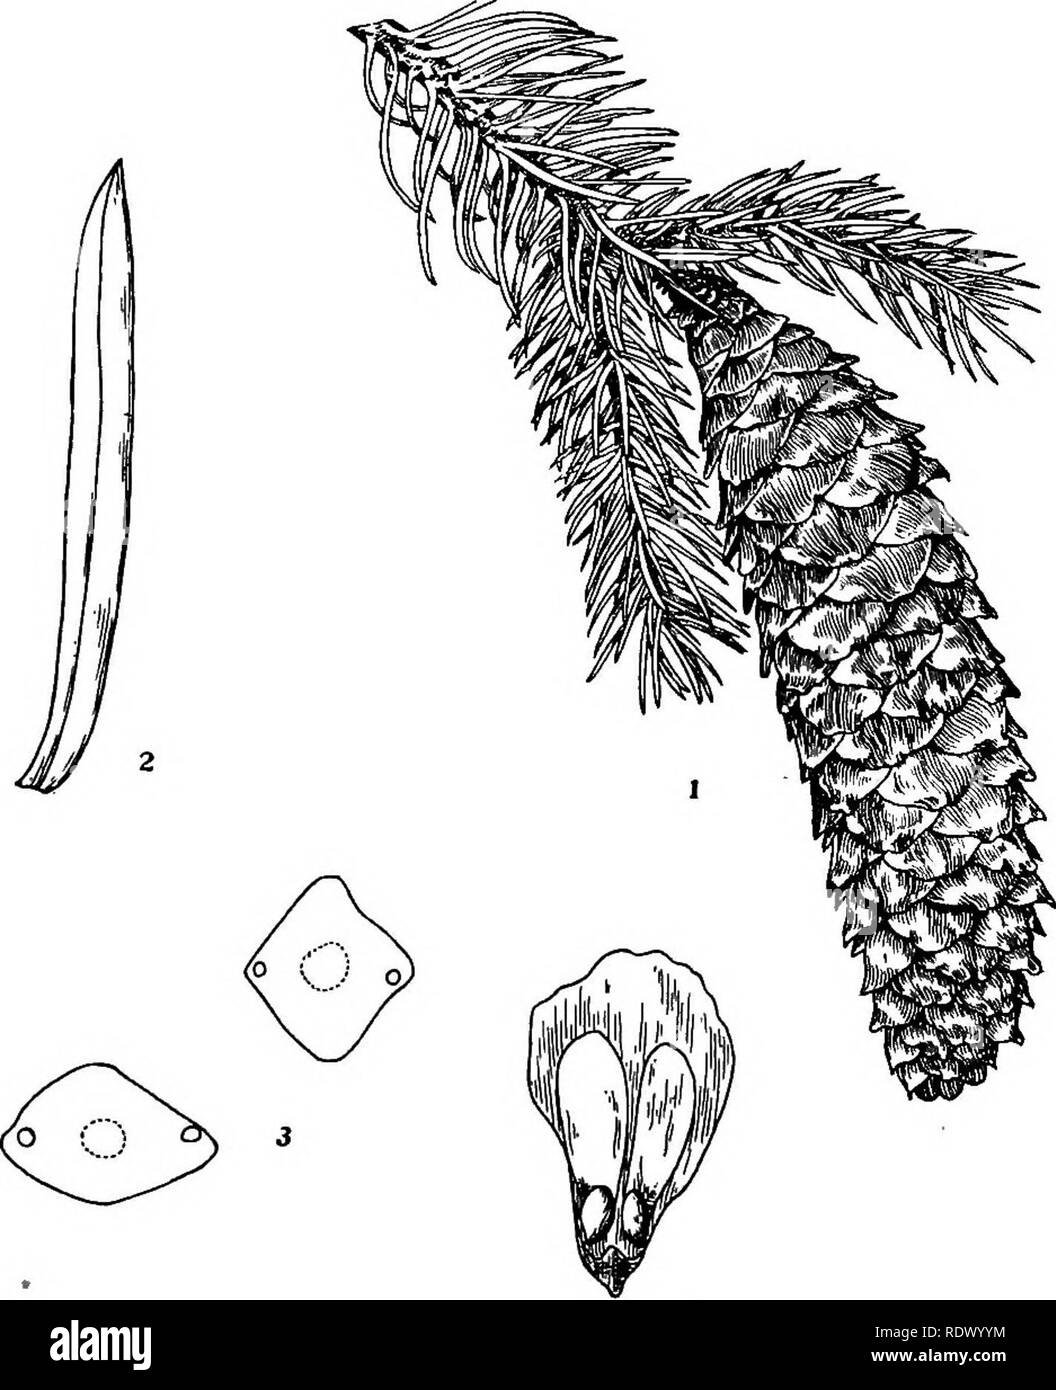 . Michigan trees; a handbook of the native and most important introduced species. Trees. Norway Spruce. 1. Branchlet with partly opened cone, x J4. 2. Leaf, X 3. 3. Cross-sections of leaves, enlarged. 4. Cone-scale with seeds, x i. -24 —. Please note that these images are extracted from scanned page images that may have been digitally enhanced for readability - coloration and appearance of these illustrations may not perfectly resemble the original work.. Otis, Charles Herbert, 1886. Ann Arbor, The Regents - Stock Image